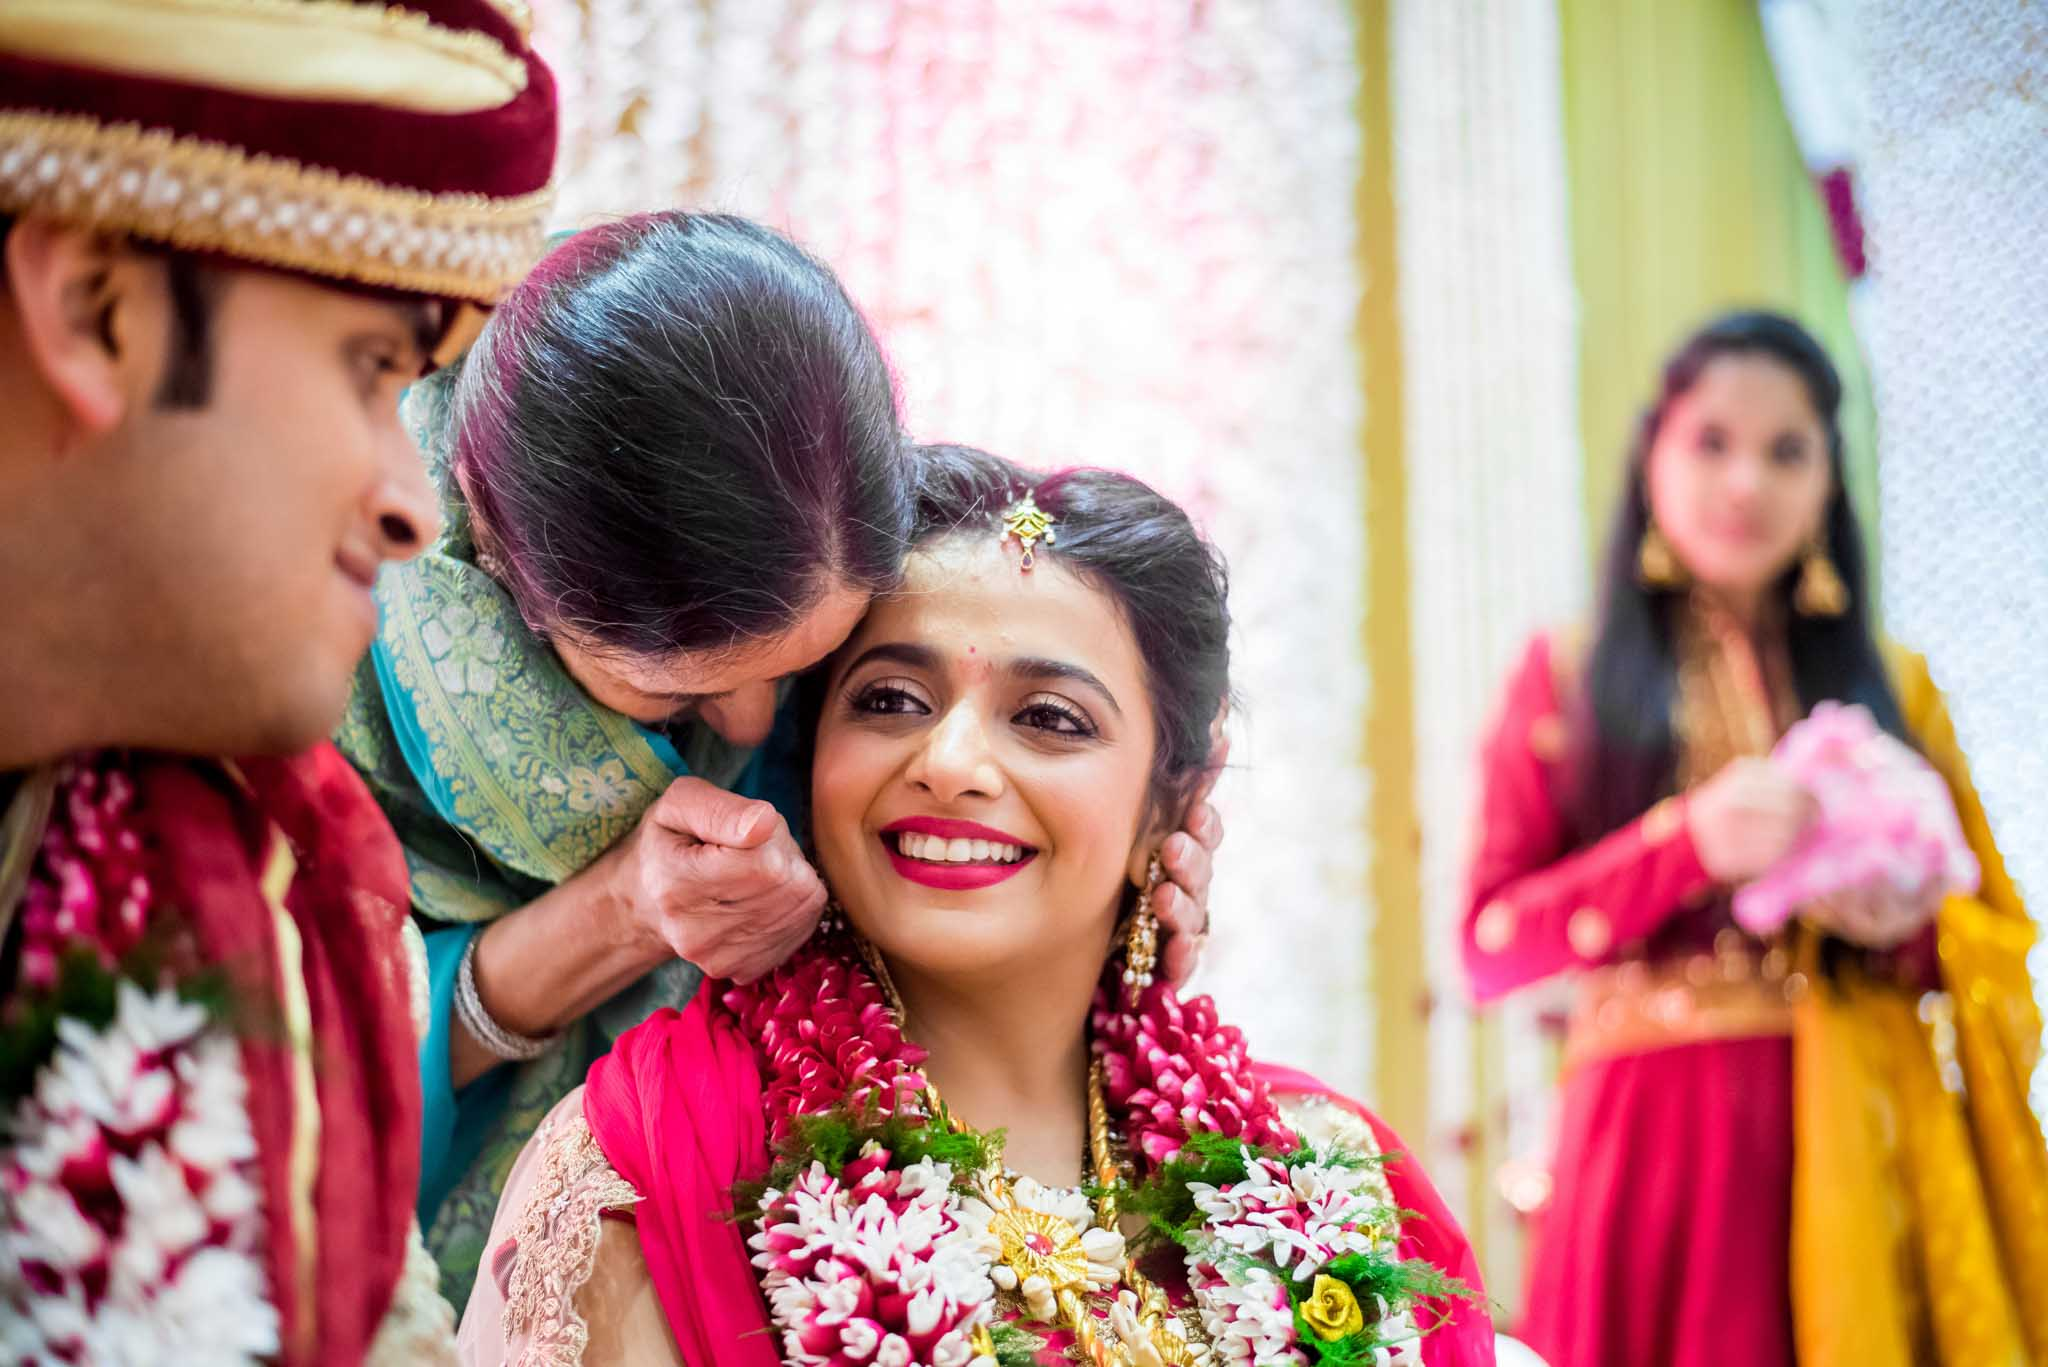 mumbai-candid-photography-wedding-whatknot-kamal-amrohi-studios-46